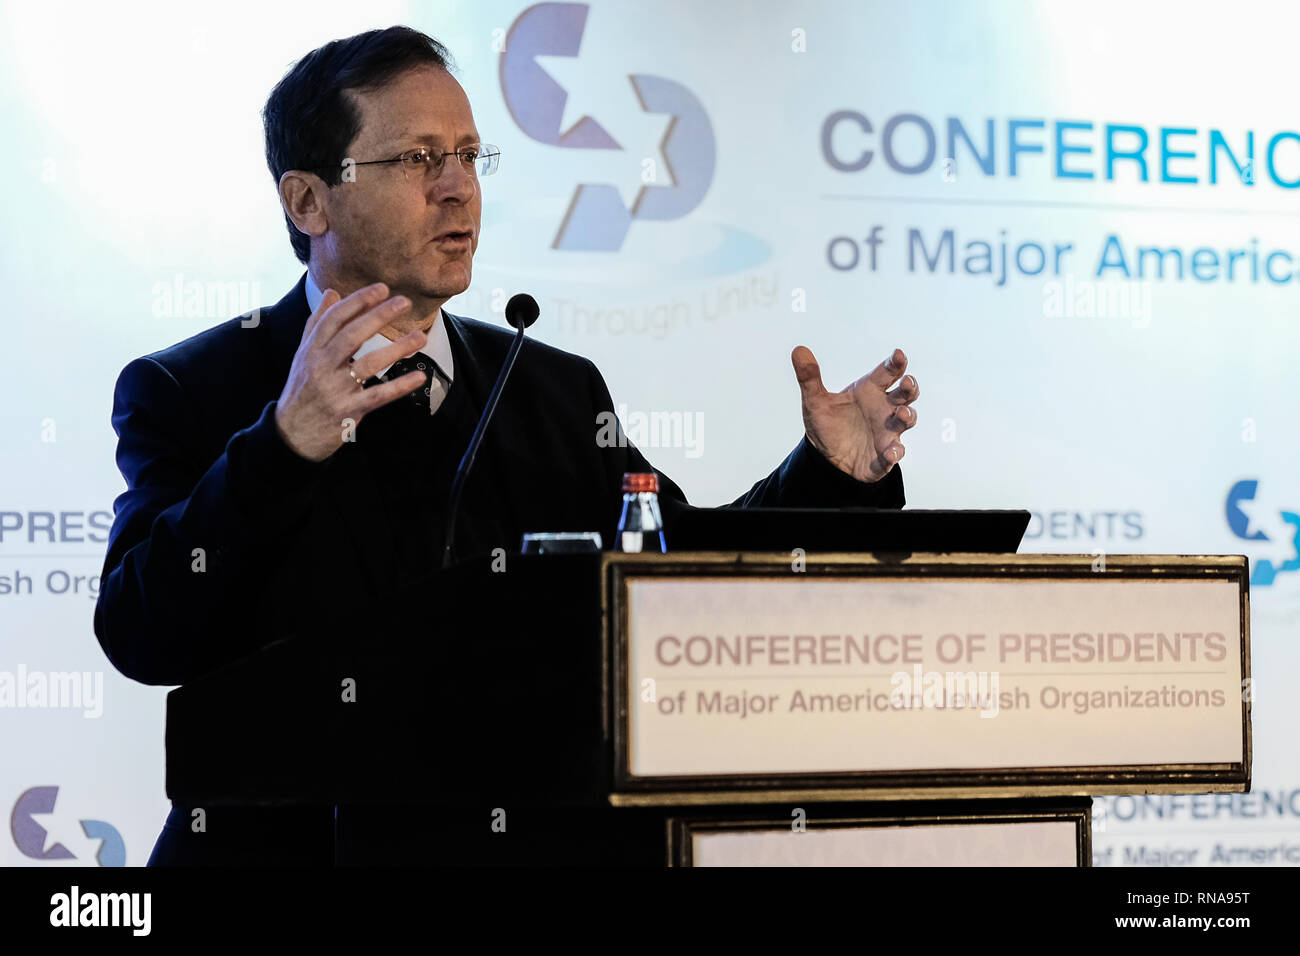 Jerusalem, Israel. 18th February, 2019. ISAAC HERZOG, 'Bougie', Chairman of the Jewish Agency, former Member of Knesset former Minister of Welfare and Social Services, former chairman of the Labor Party and opposition leader, speaks at the  45th Conference of Presidents of Major American Jewish Organizations Leadership Mission to Israel (COP) at the Inbal Hotel in Jerusalem. More than 100 American leaders from the Conference's 53 member organizations and its National Leadership Council participate. Credit: Nir Alon/Alamy Live News - Stock Image